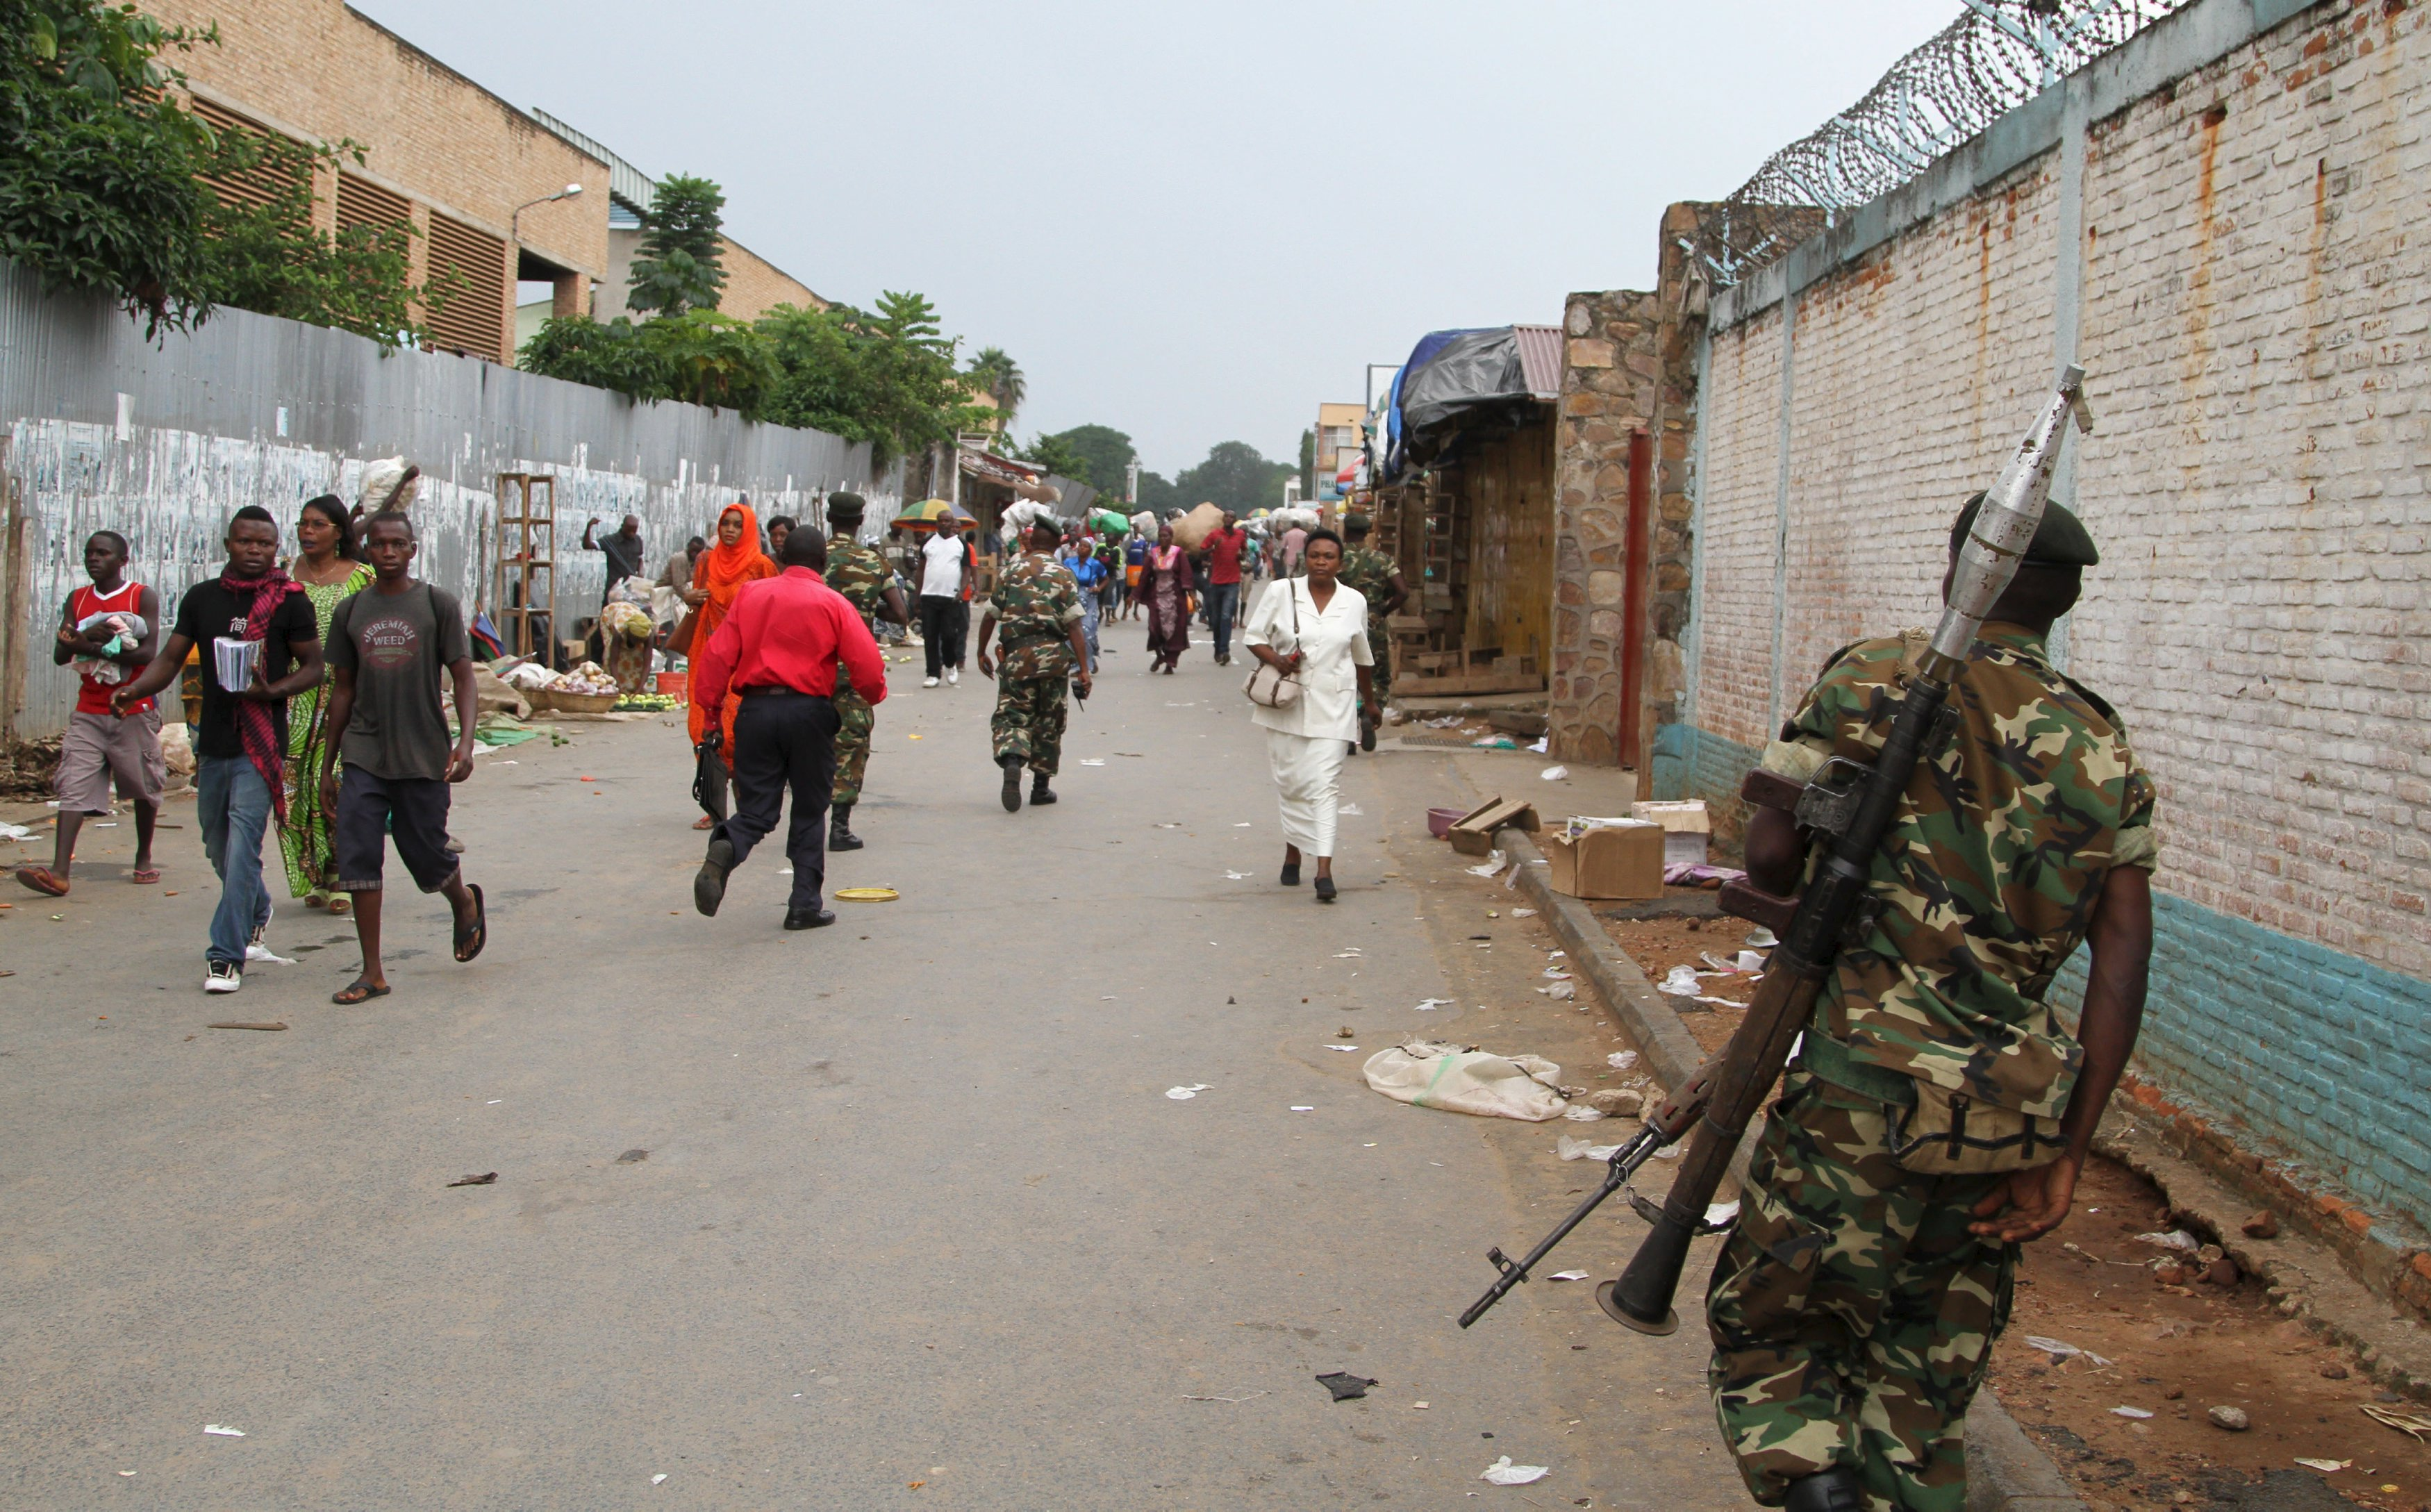 A soldier patrols the streets after a grenade attack of Burundi's capital Bujumbura, February 3, 2016. At least one person was killed in a grenade attack on a bar in Burundi on Monday night, witnesses said, in more violence since the African Union backed away from sending in peacekeepers without the government's consent. REUTERS/Jean Pierre Aime Harerimama